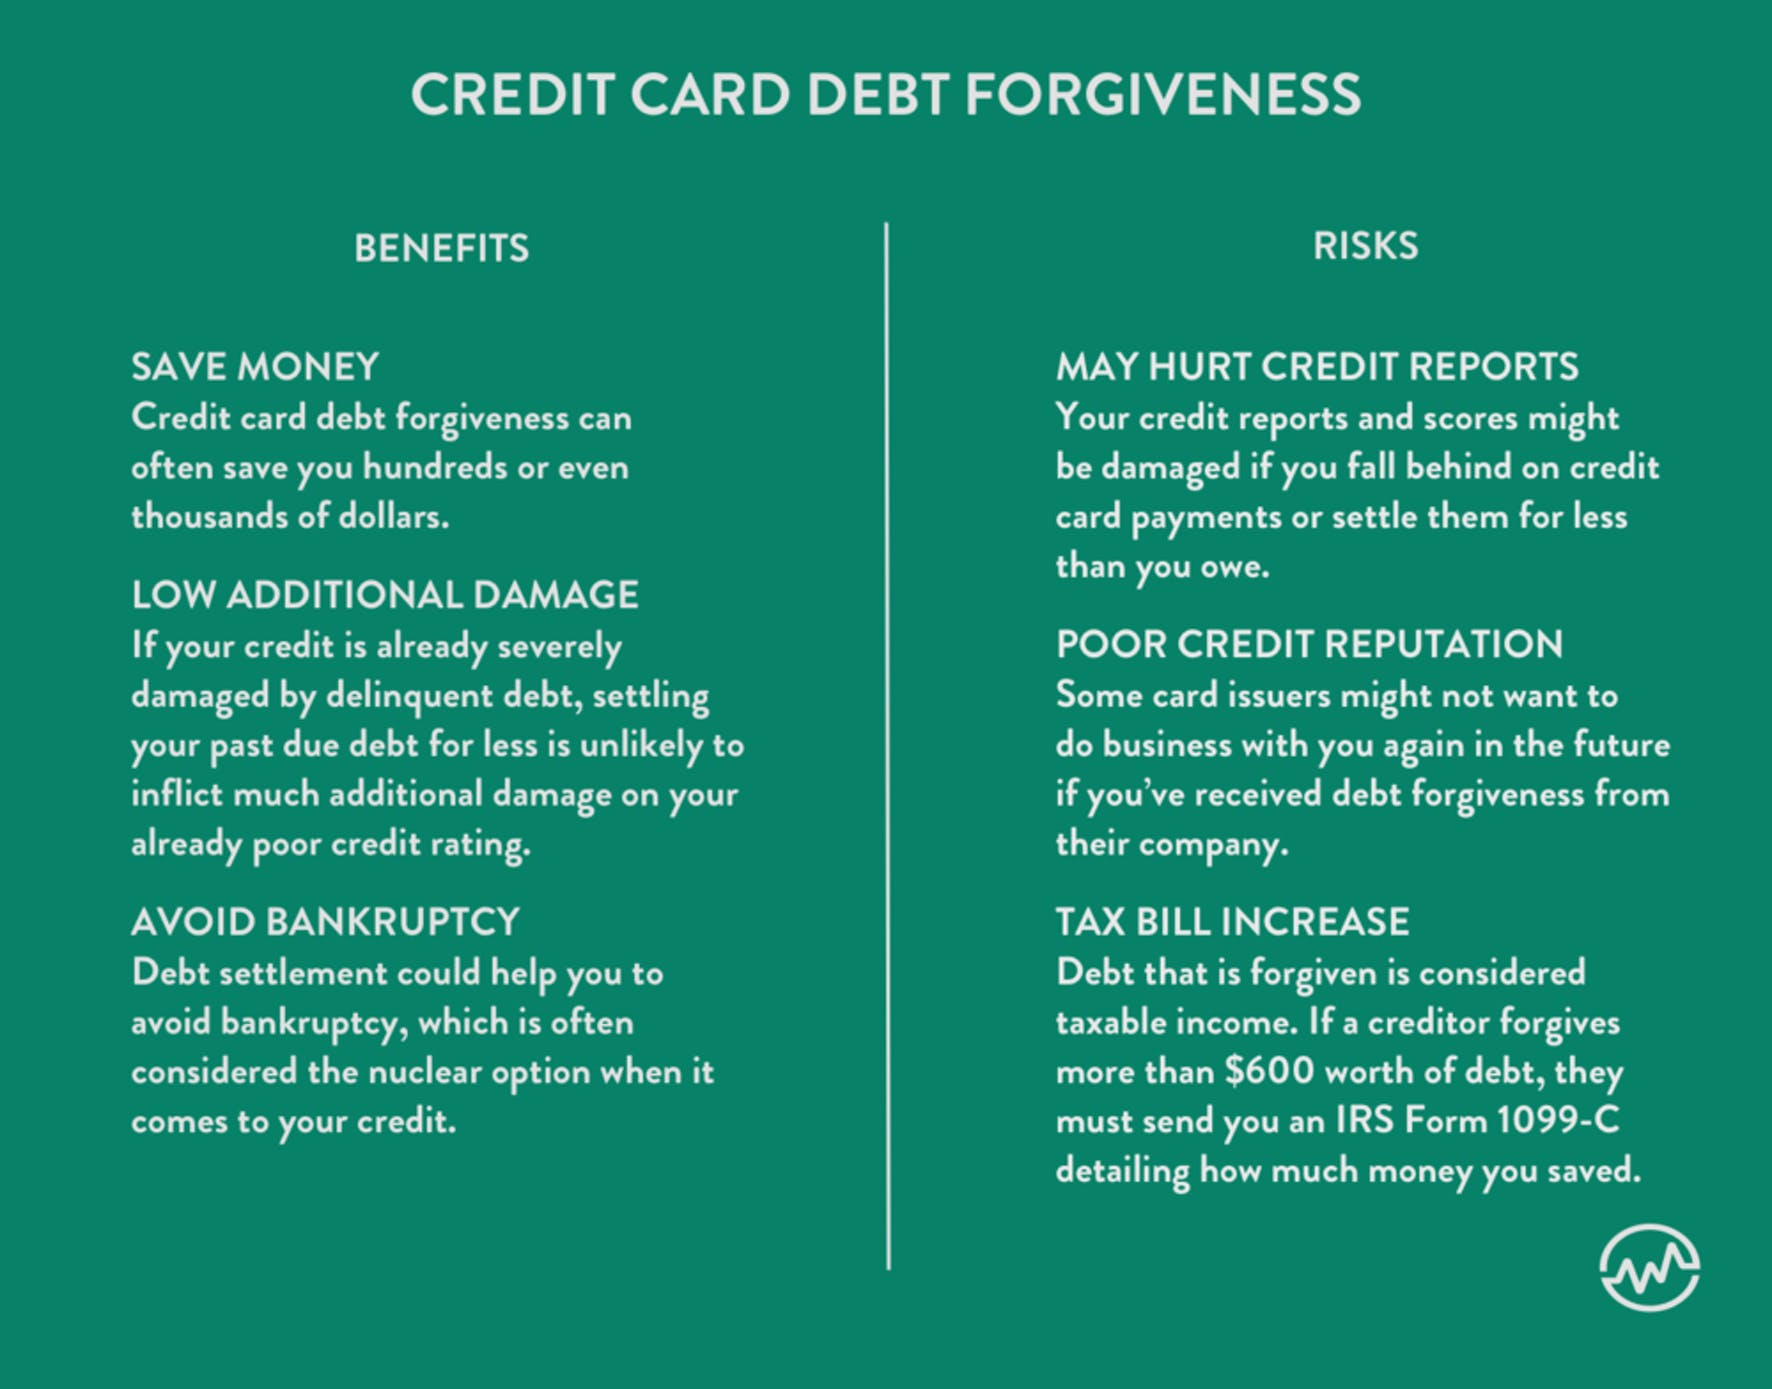 Benefits and risks of credit card debt forgiveness